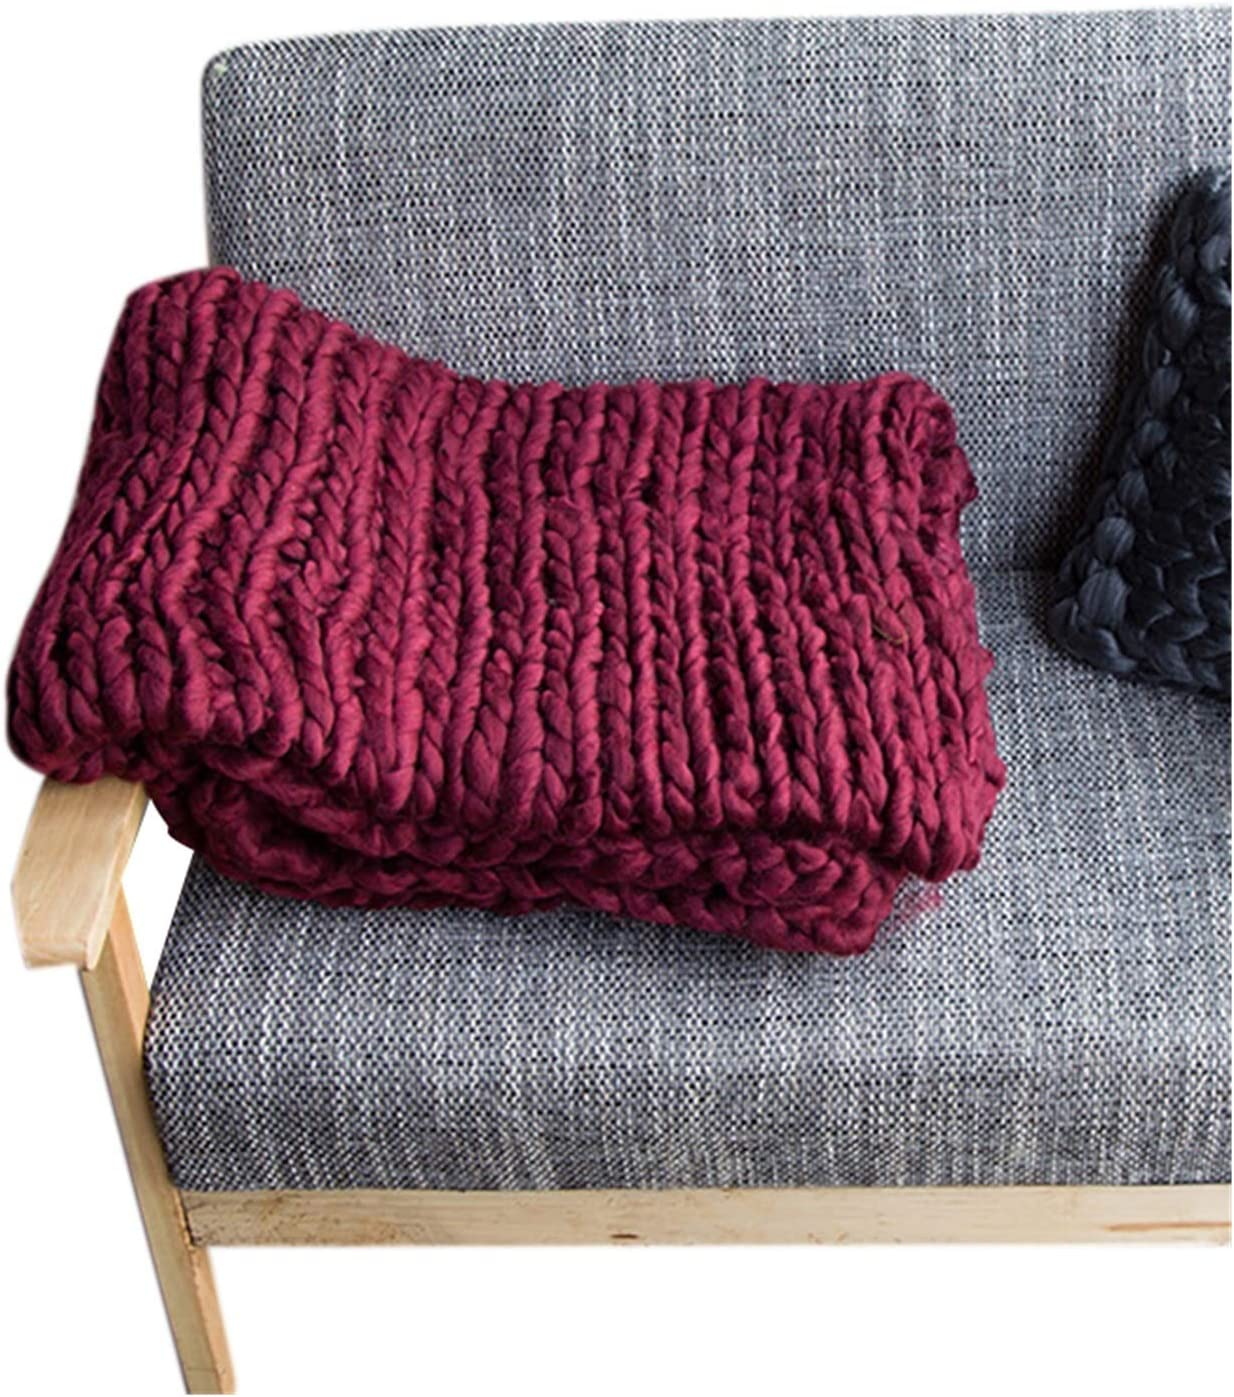 JDJD Hand Knitted Chunky Outlet SALE Blanket Regular discount Bulky Thick Wool Yarn Weighted